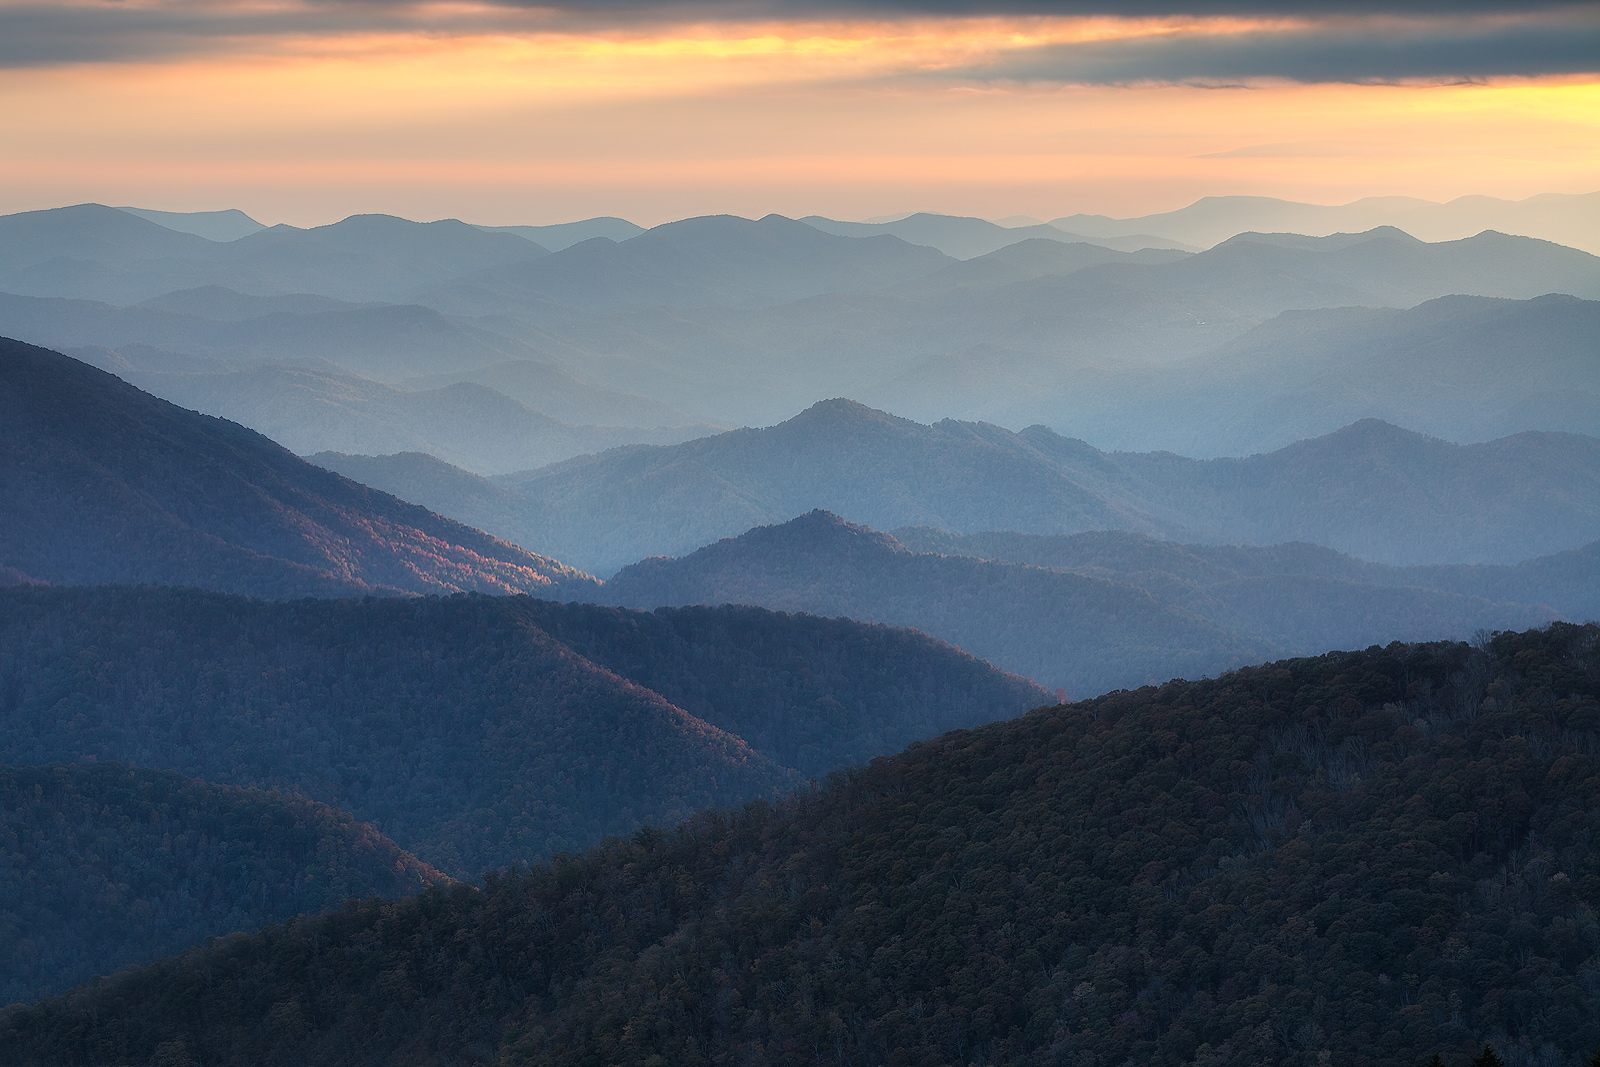 blue ridge parkway,cowee mountains,east,mountain,north america,north carolina,peak,sunset,united states, photo